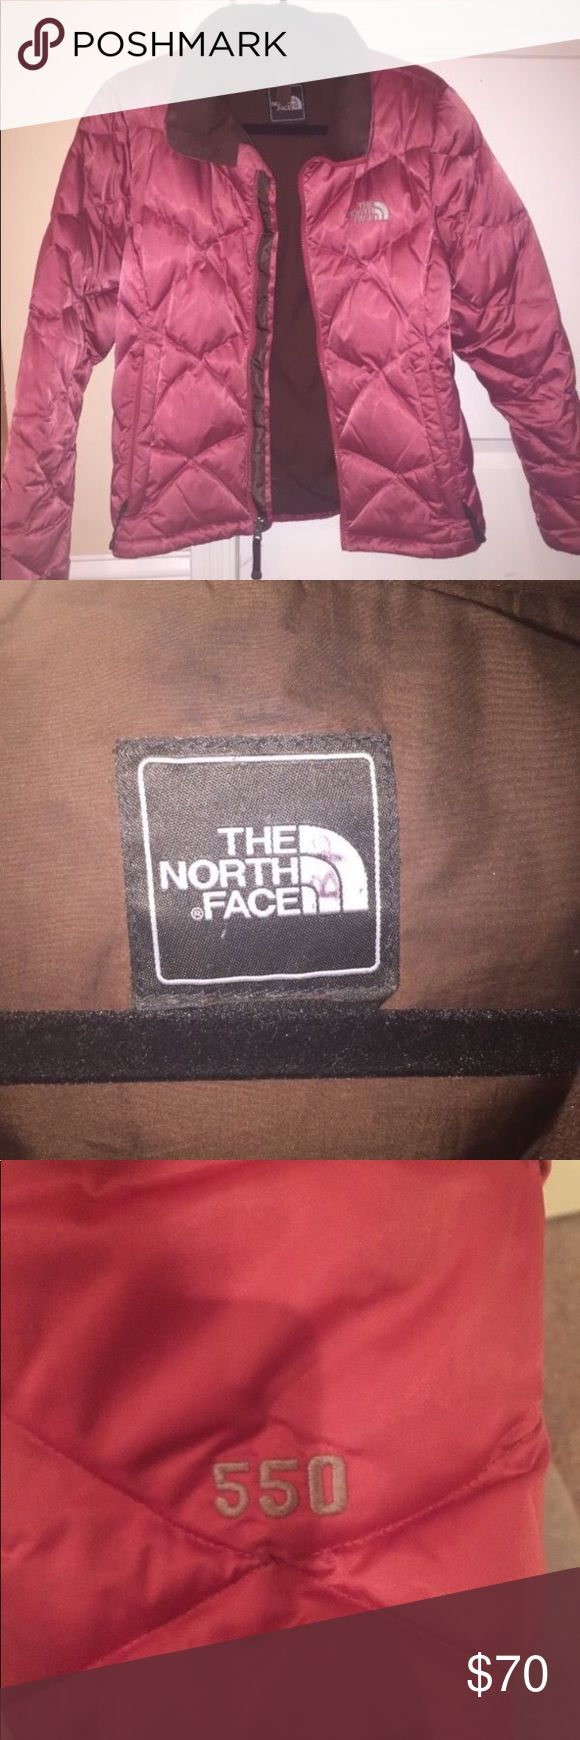 North Face Womens Quilted Jacket. 550 Goose Down. Berry colored down feather winter coat! This has been my favorite jacket over the years and will keep you extra warm during the winter. North Face Jackets & Coats Puffers